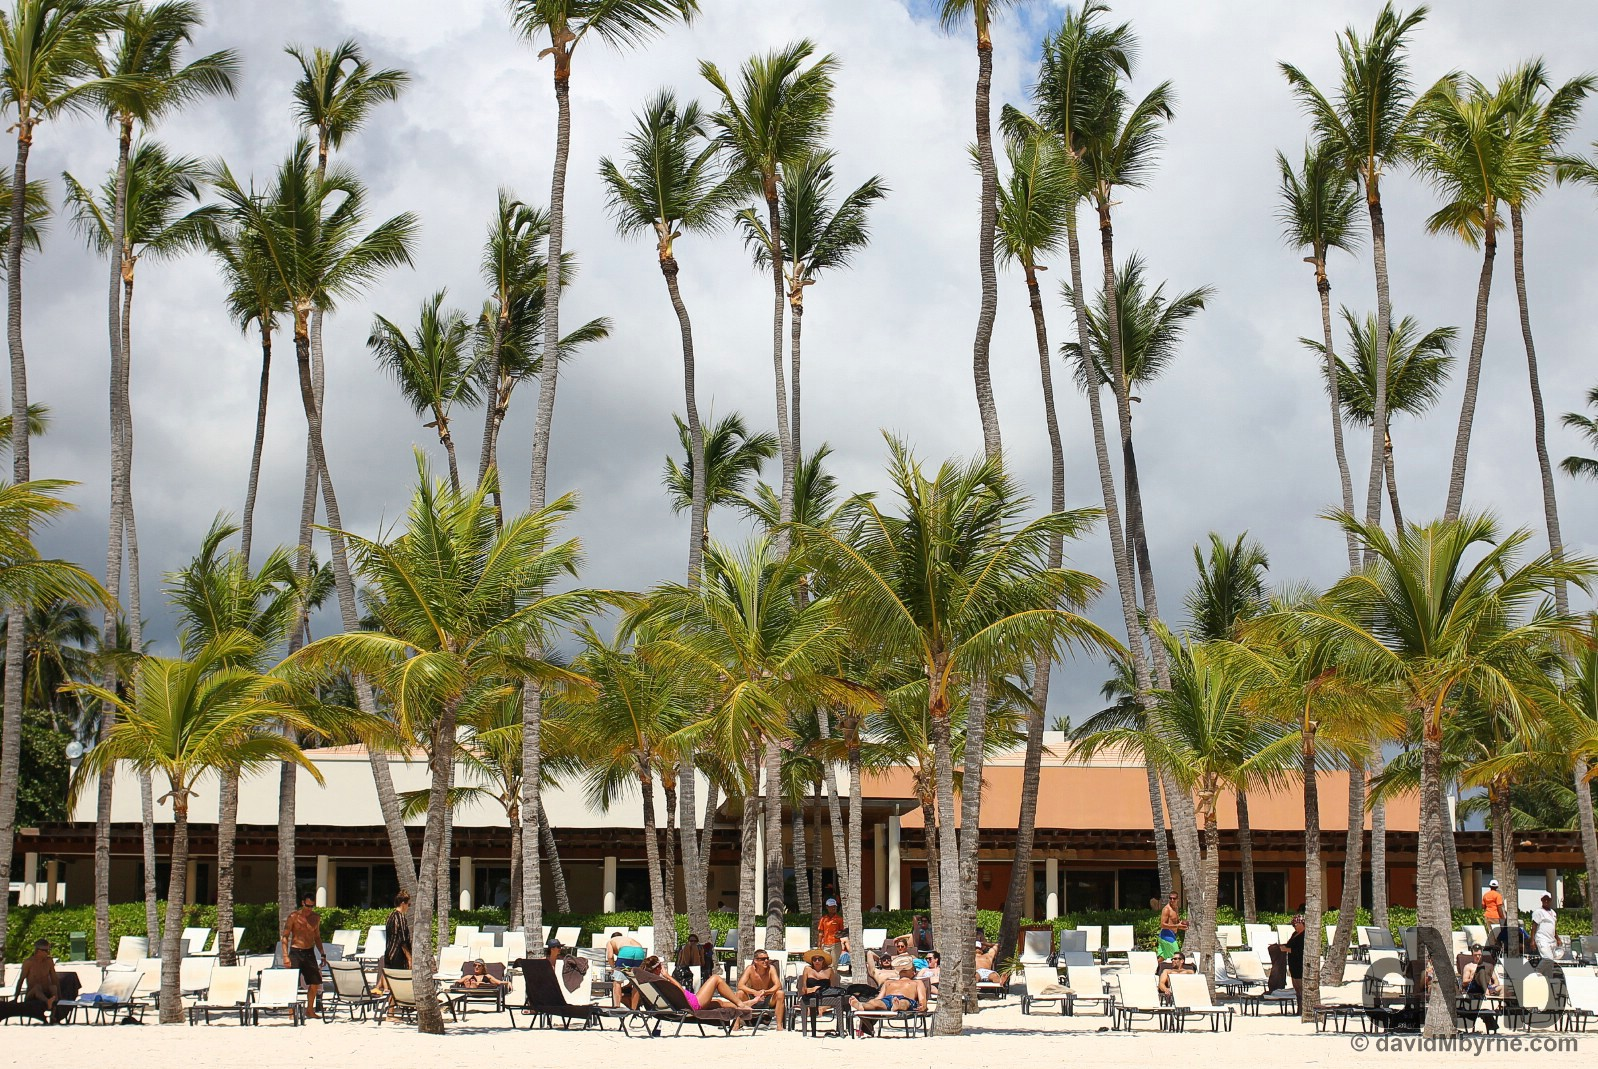 Bavaro Beach, Punta Cana, Dominican Republic. May 28, 2015.